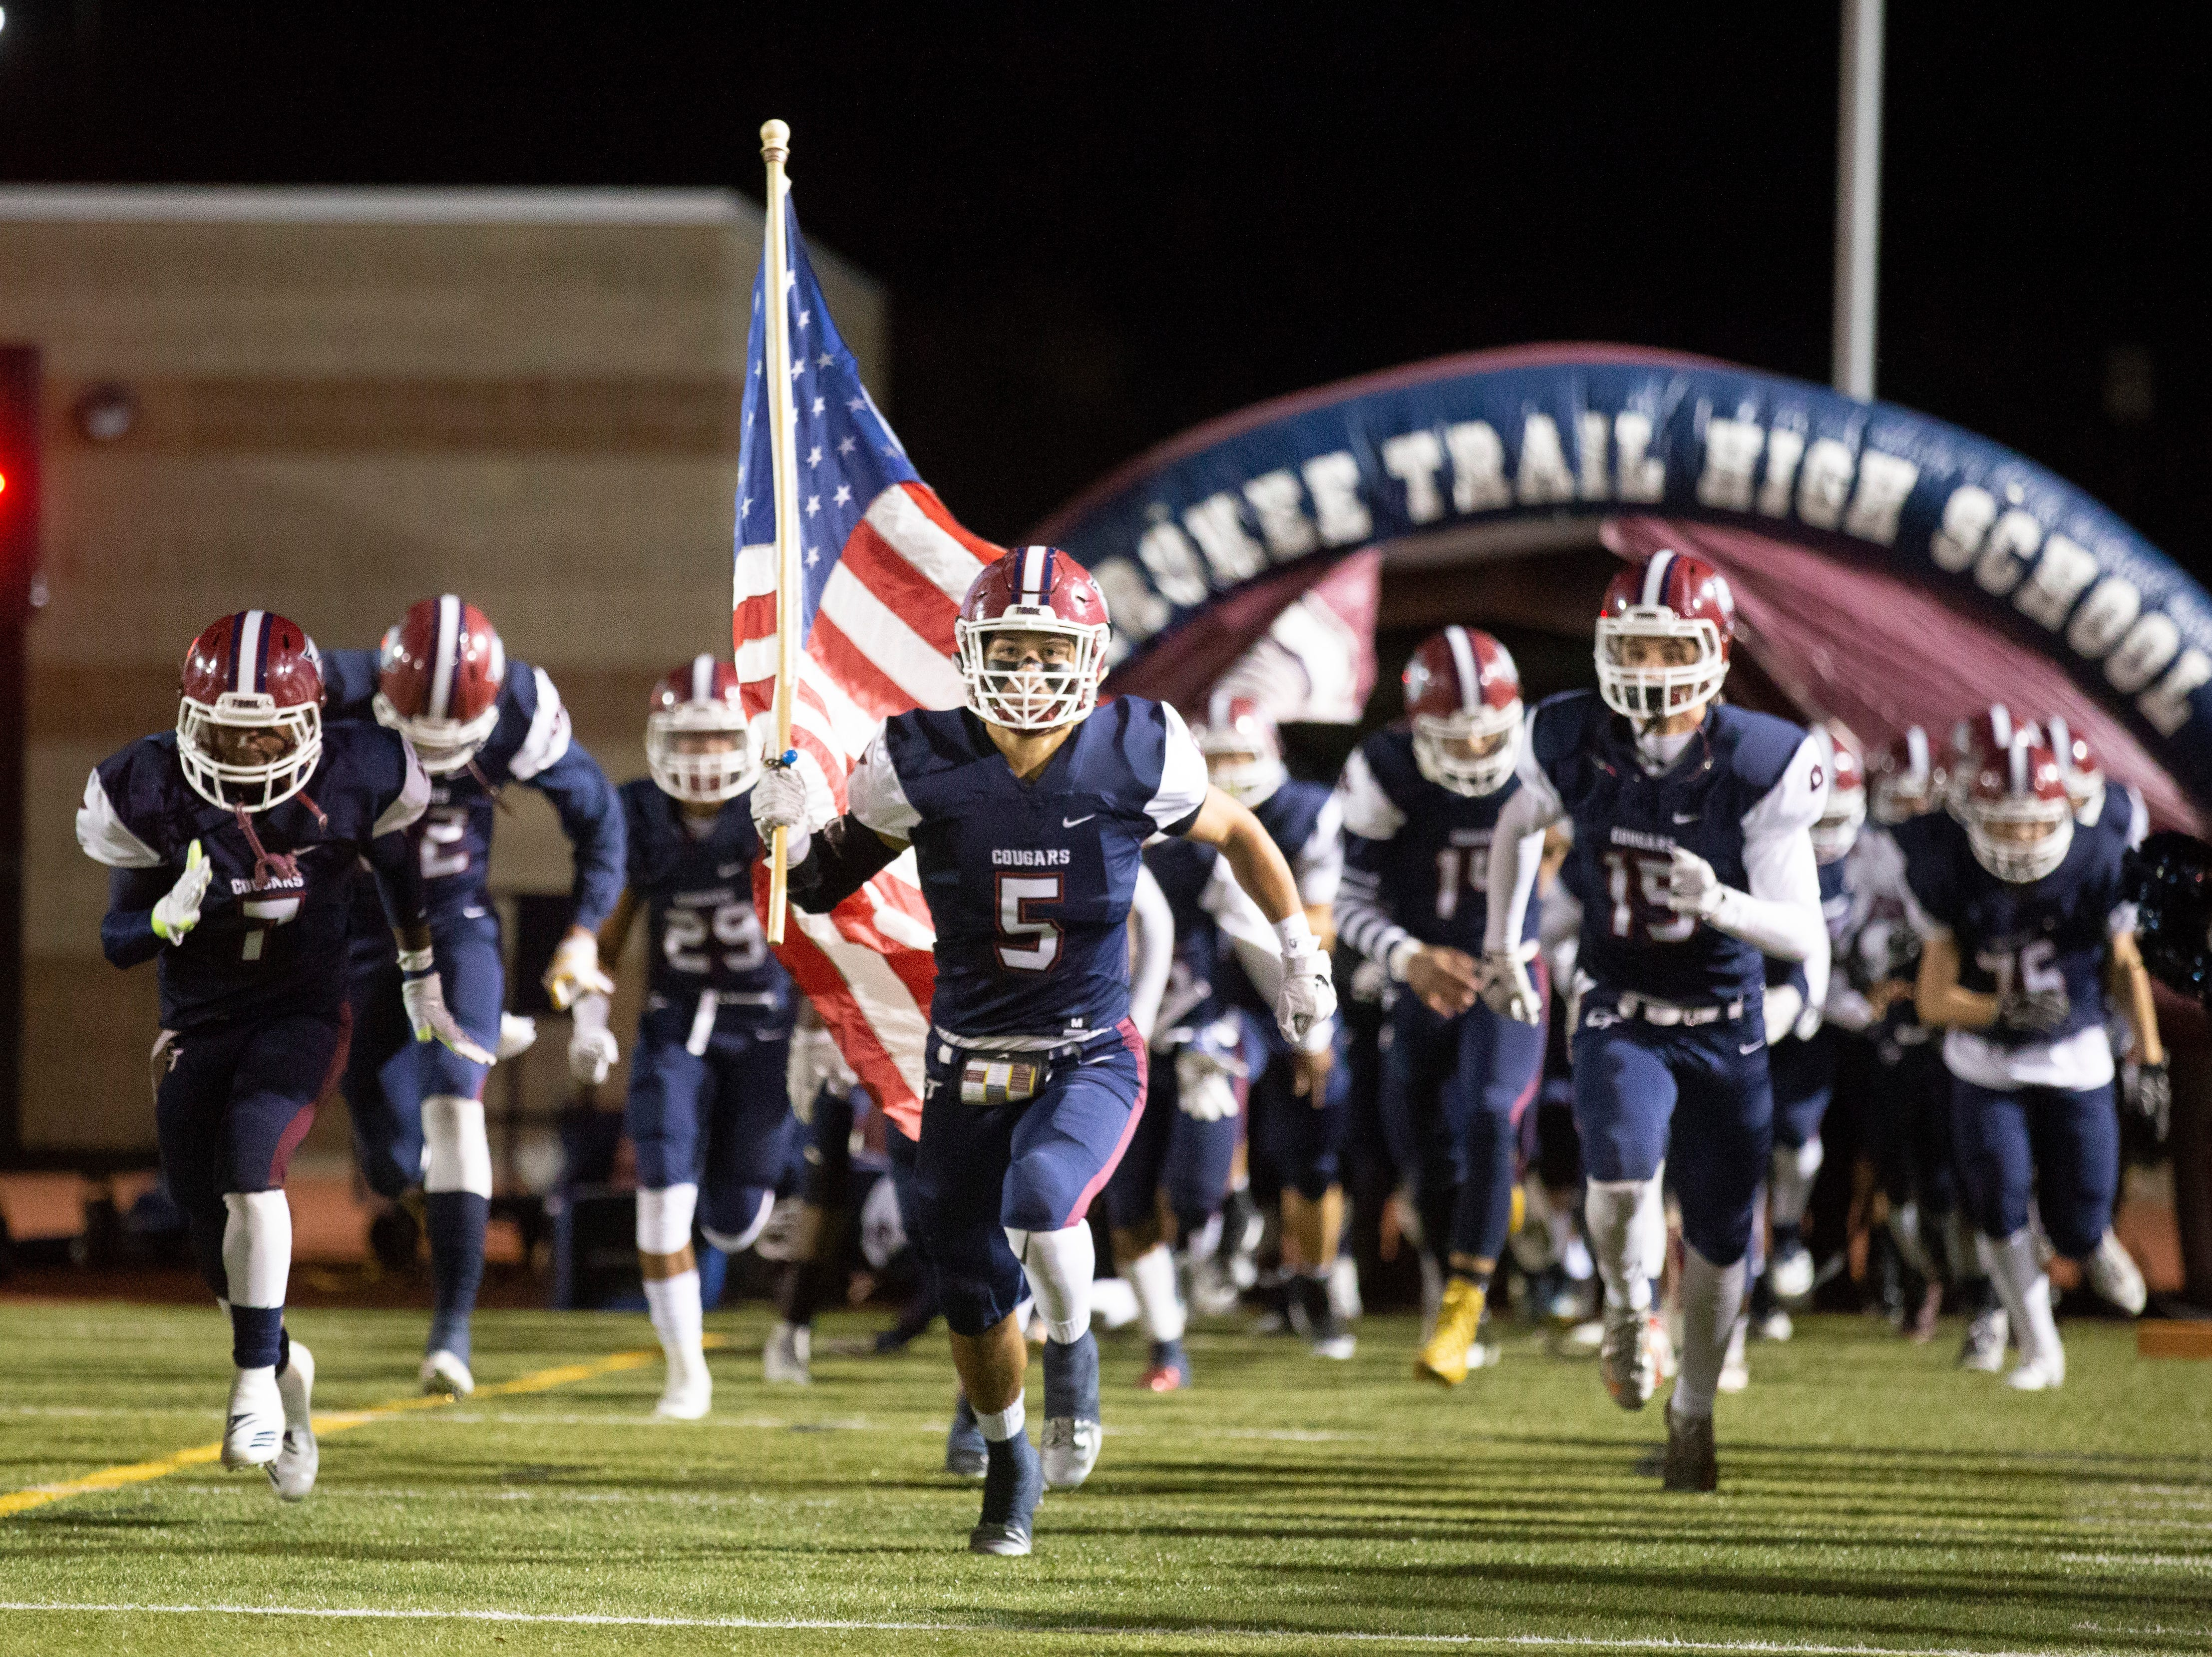 Members of the Cherokee Trail High School football team run out of a tunnel before the start of a CHSAA playoff game against Poudre High School on Friday evening in Aurora.